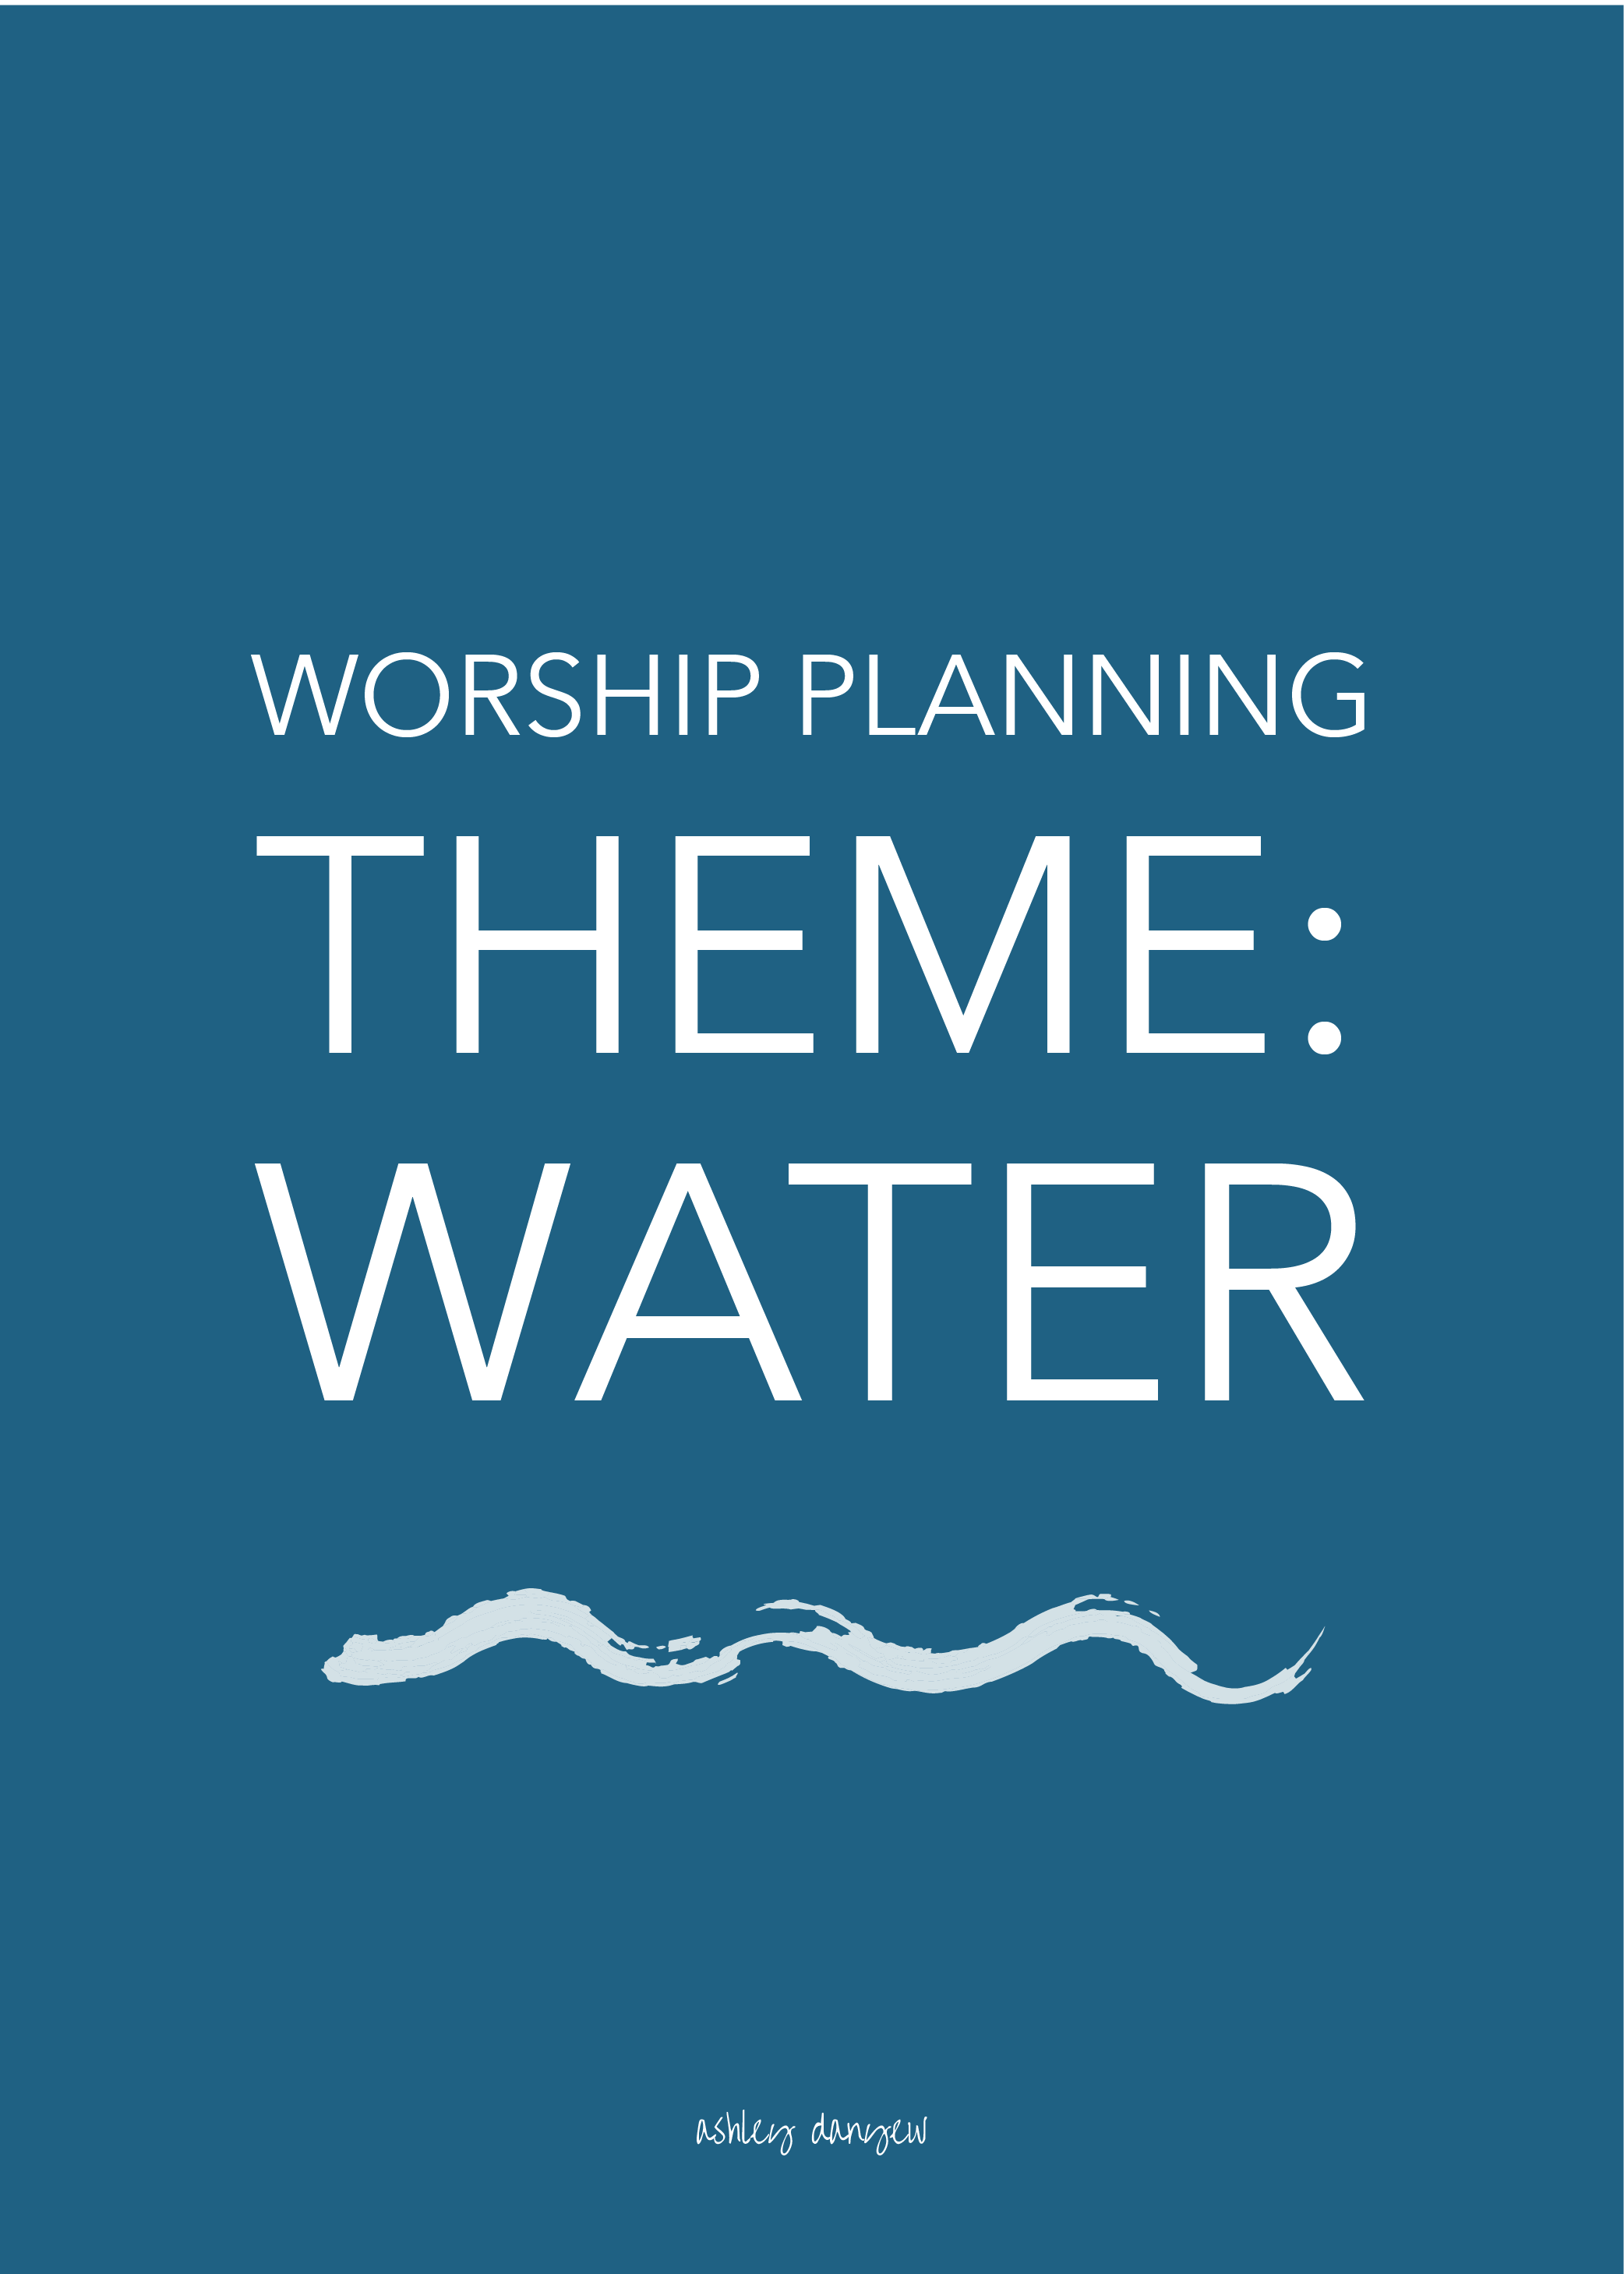 Copy of Worship Planning Theme: Water